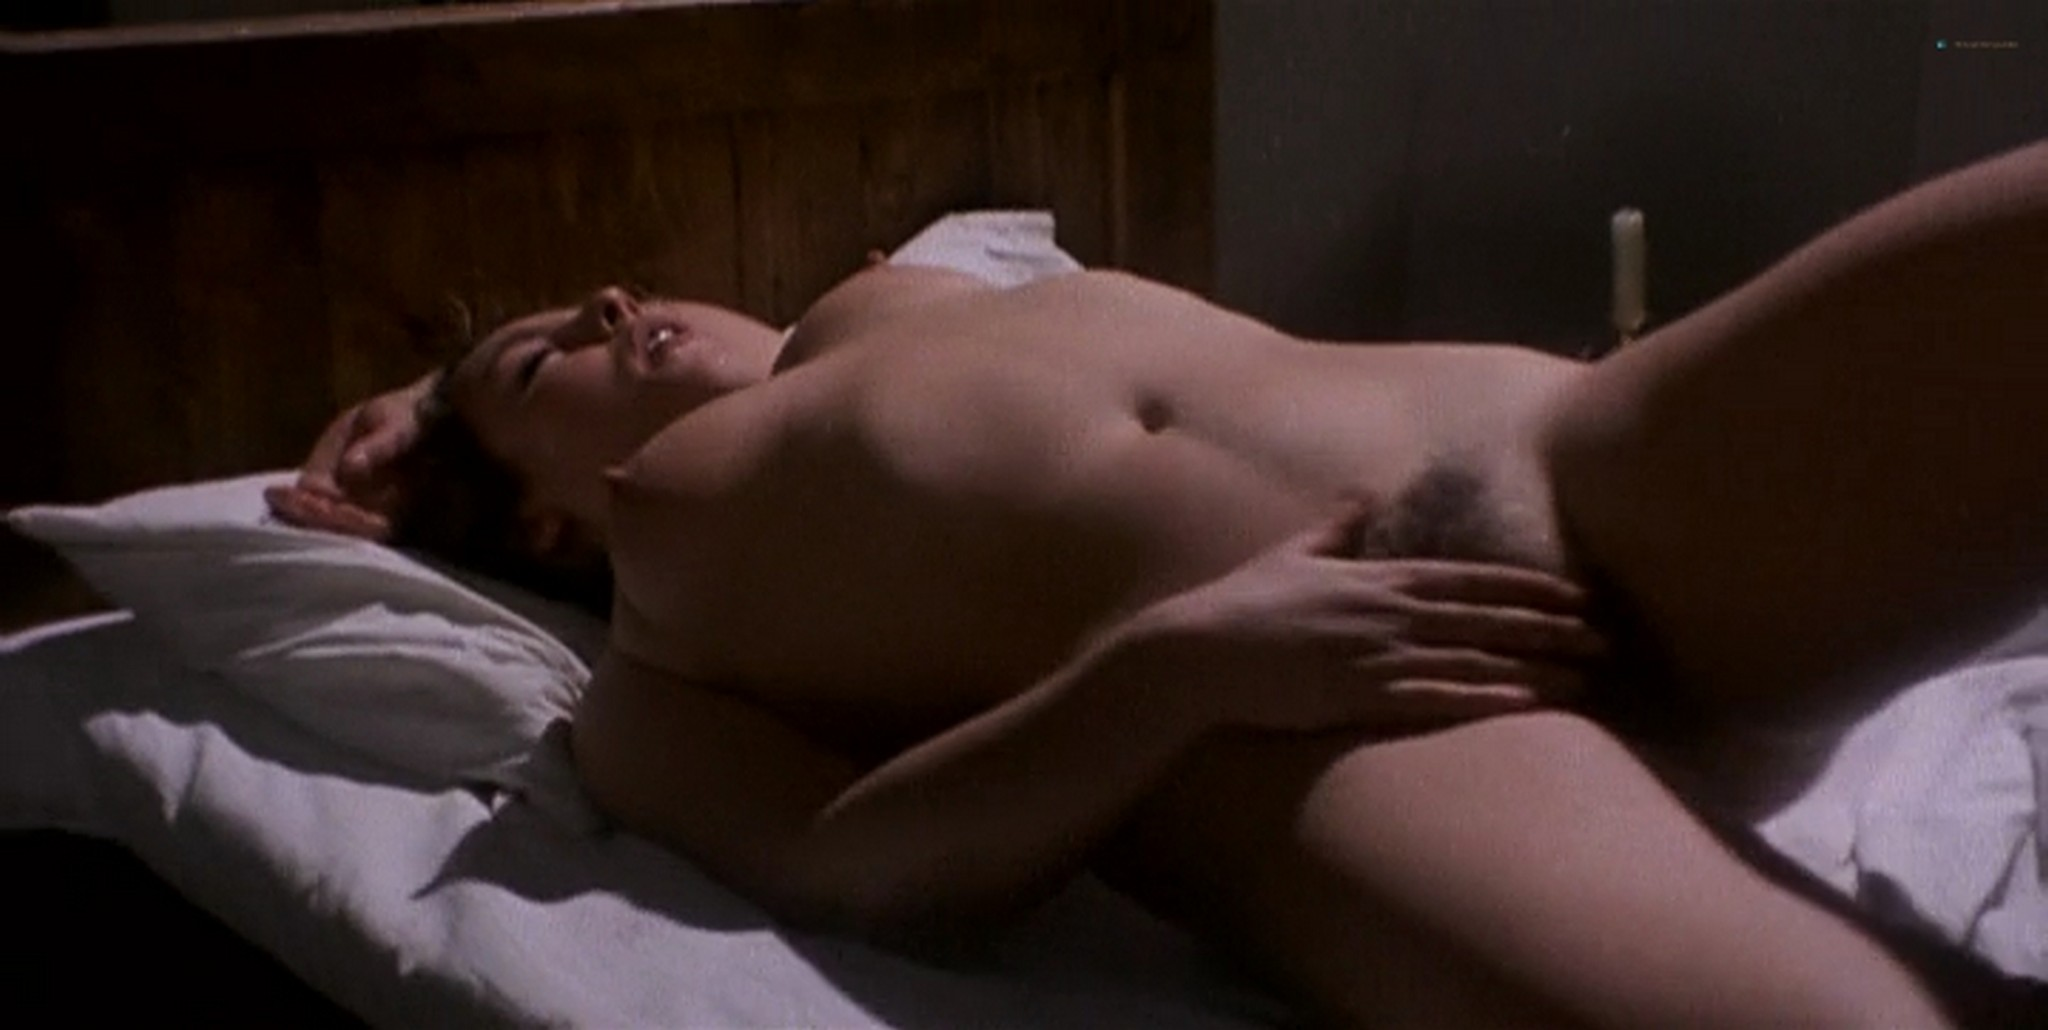 Paola Senatore nude explicit Marina Hedman and others nude explicit lesbian scenes - Images in a Convent (4)